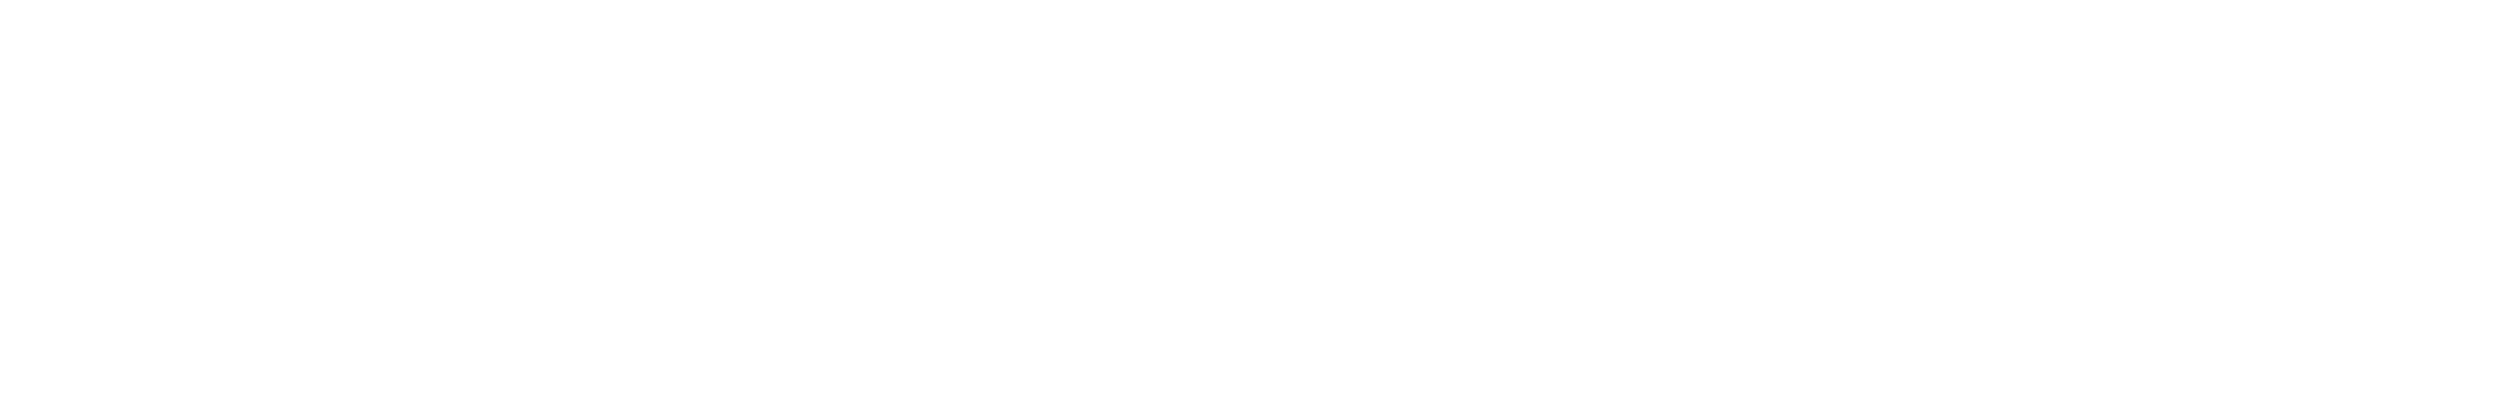 Wave Form - Right (Upside Down).png